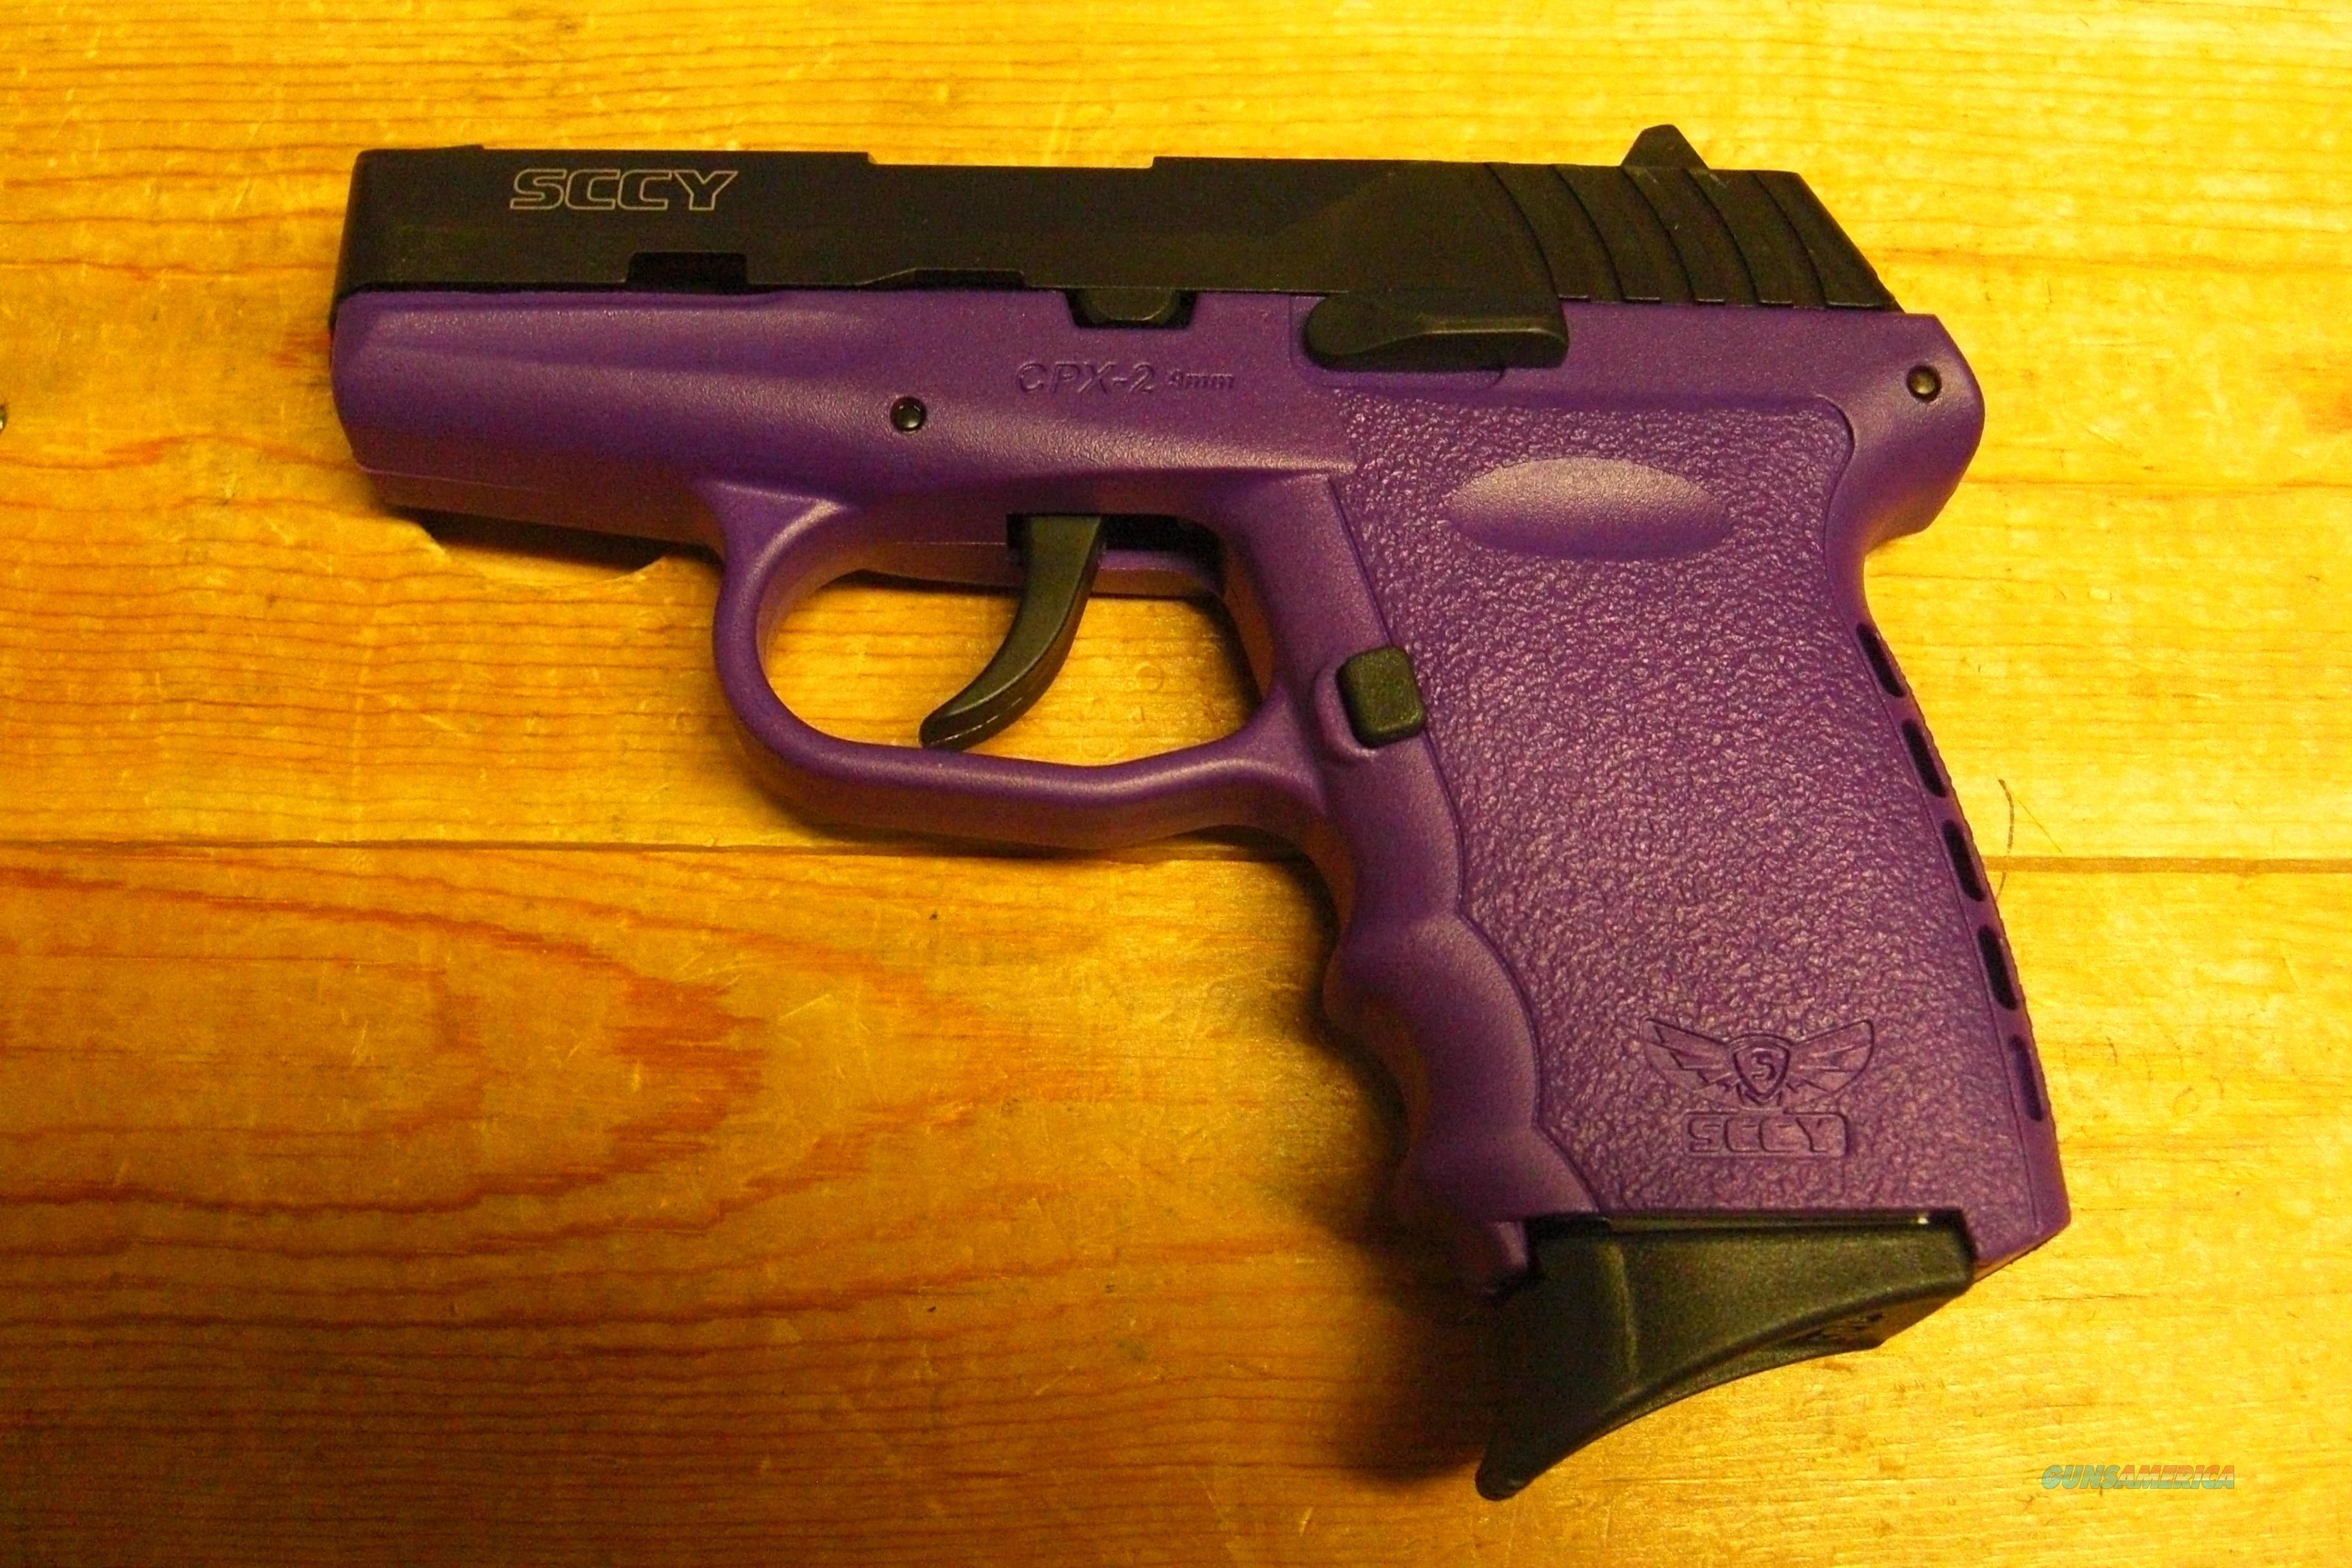 SCCY CPX-2 w/2 tone black and purple finish, no external safety  Guns > Pistols > SCCY Pistols > CPX2